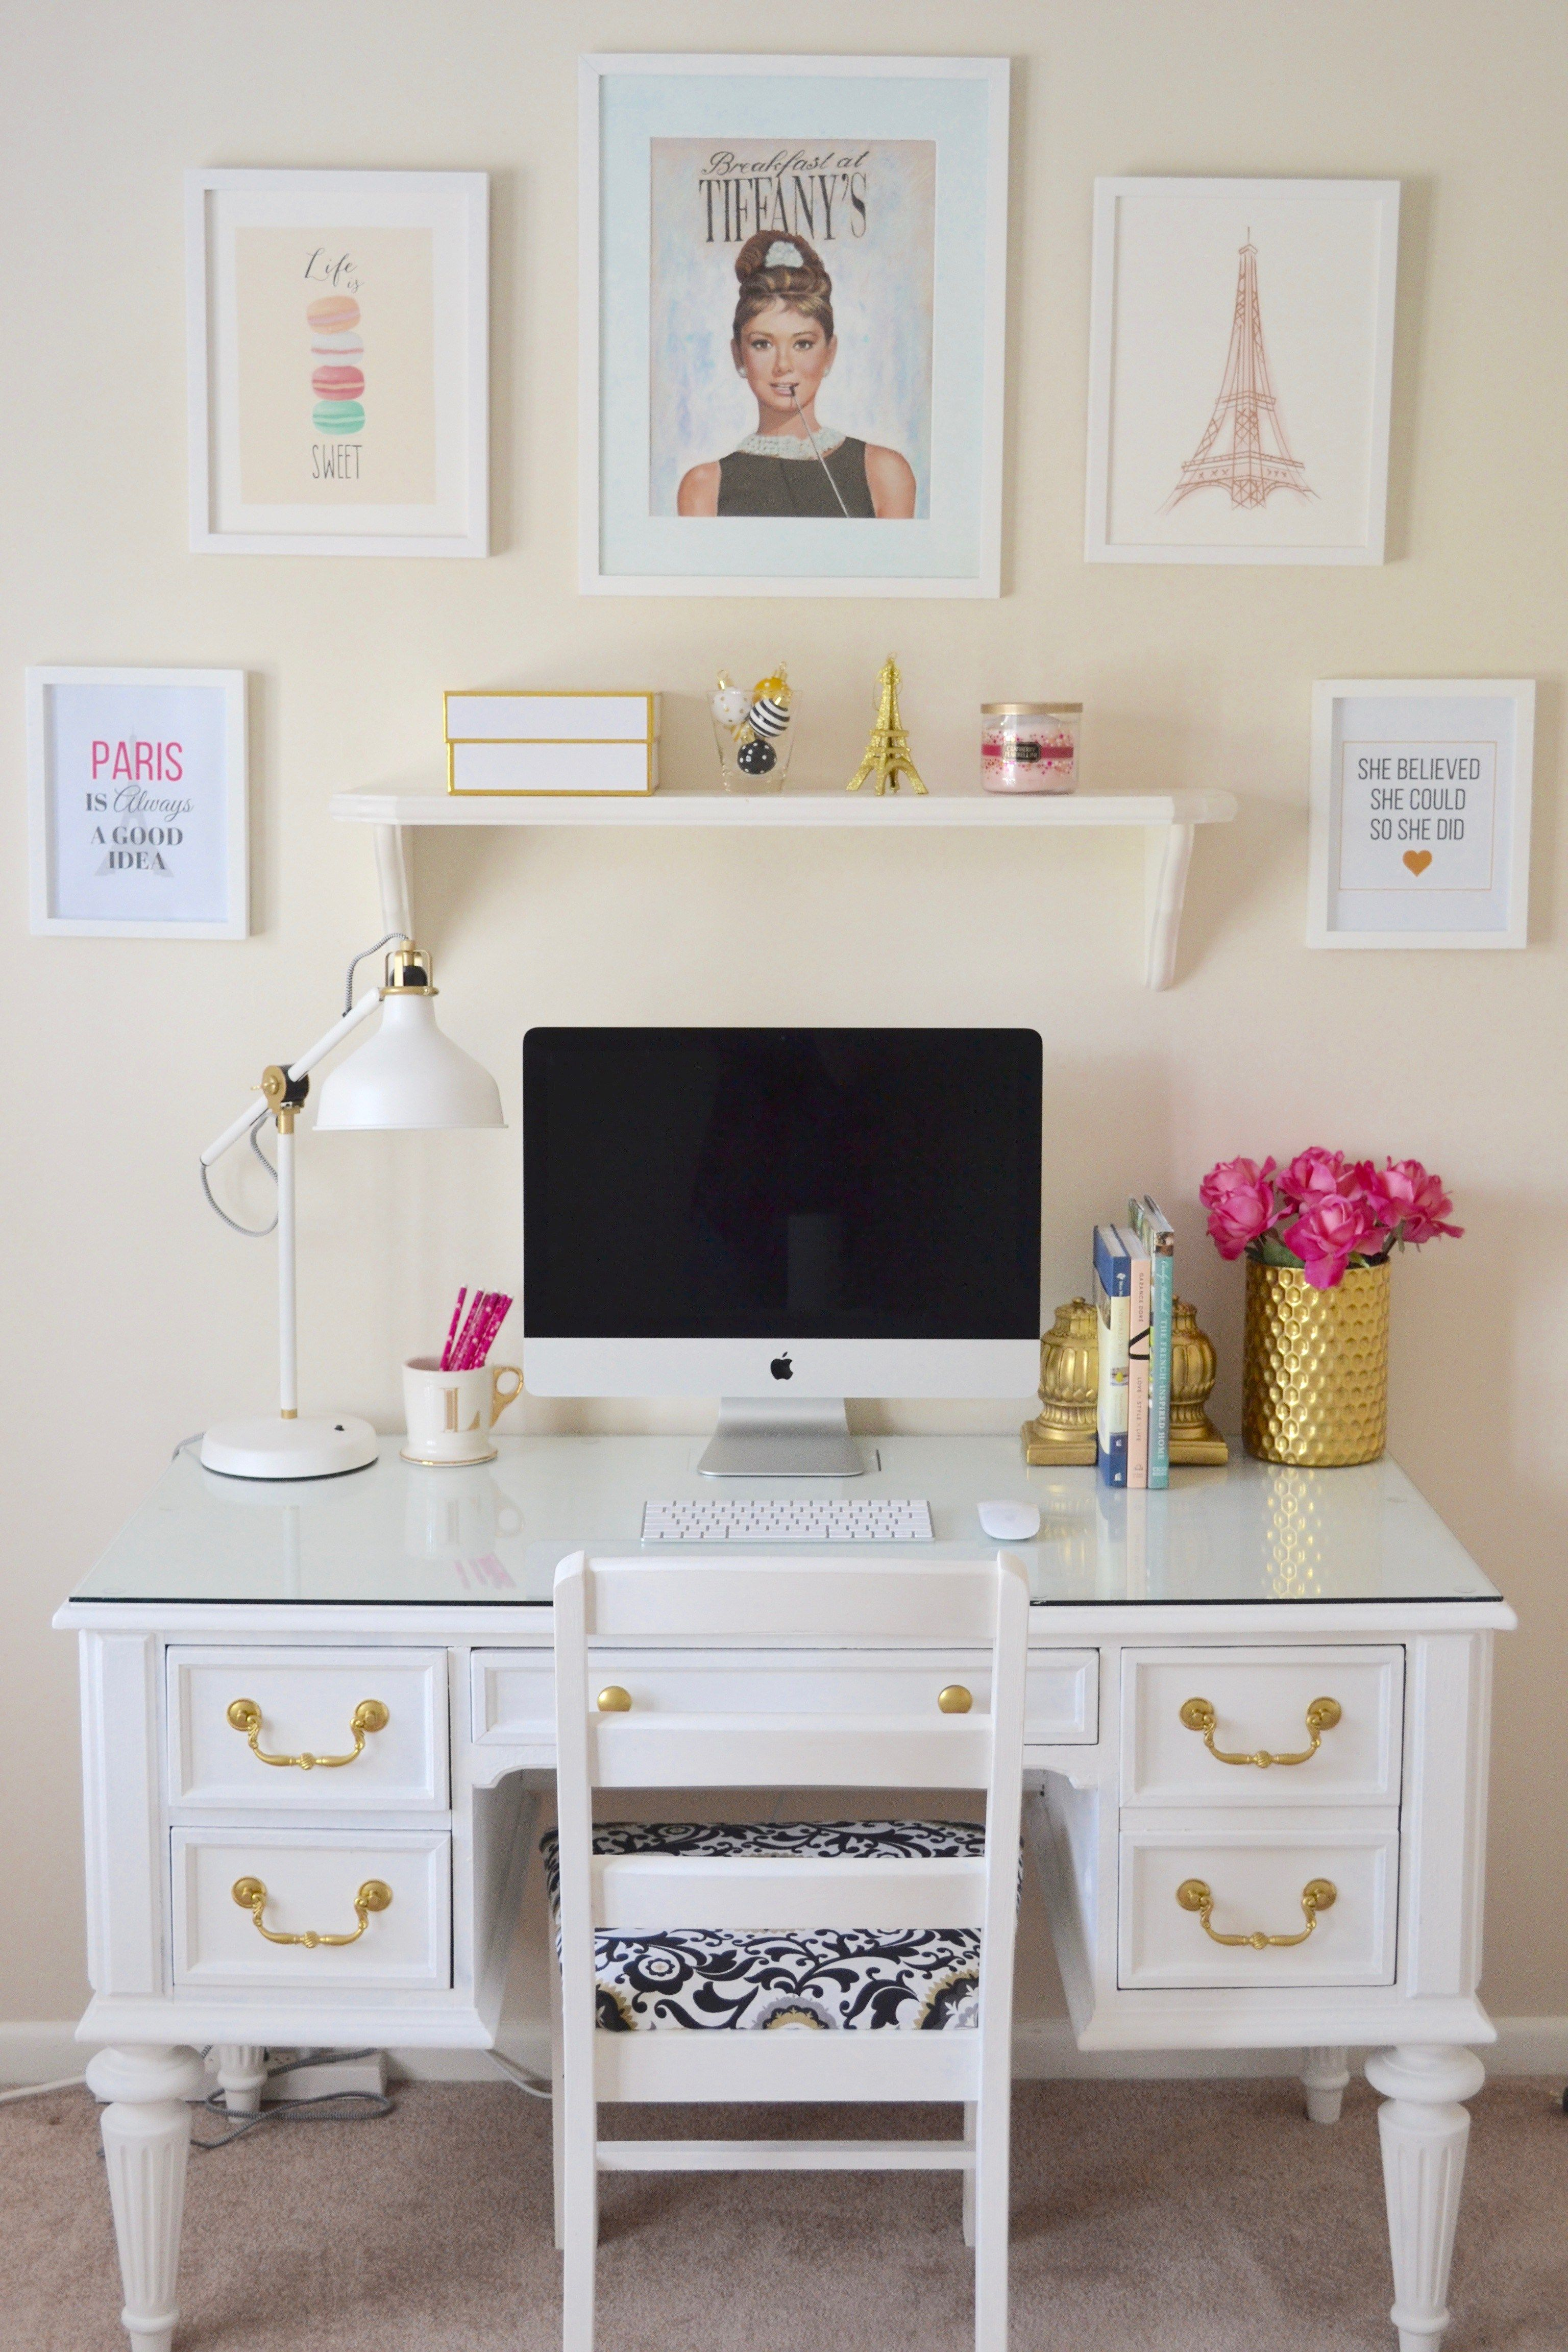 New Office Reveal + Minted Giveaway! Home office decor